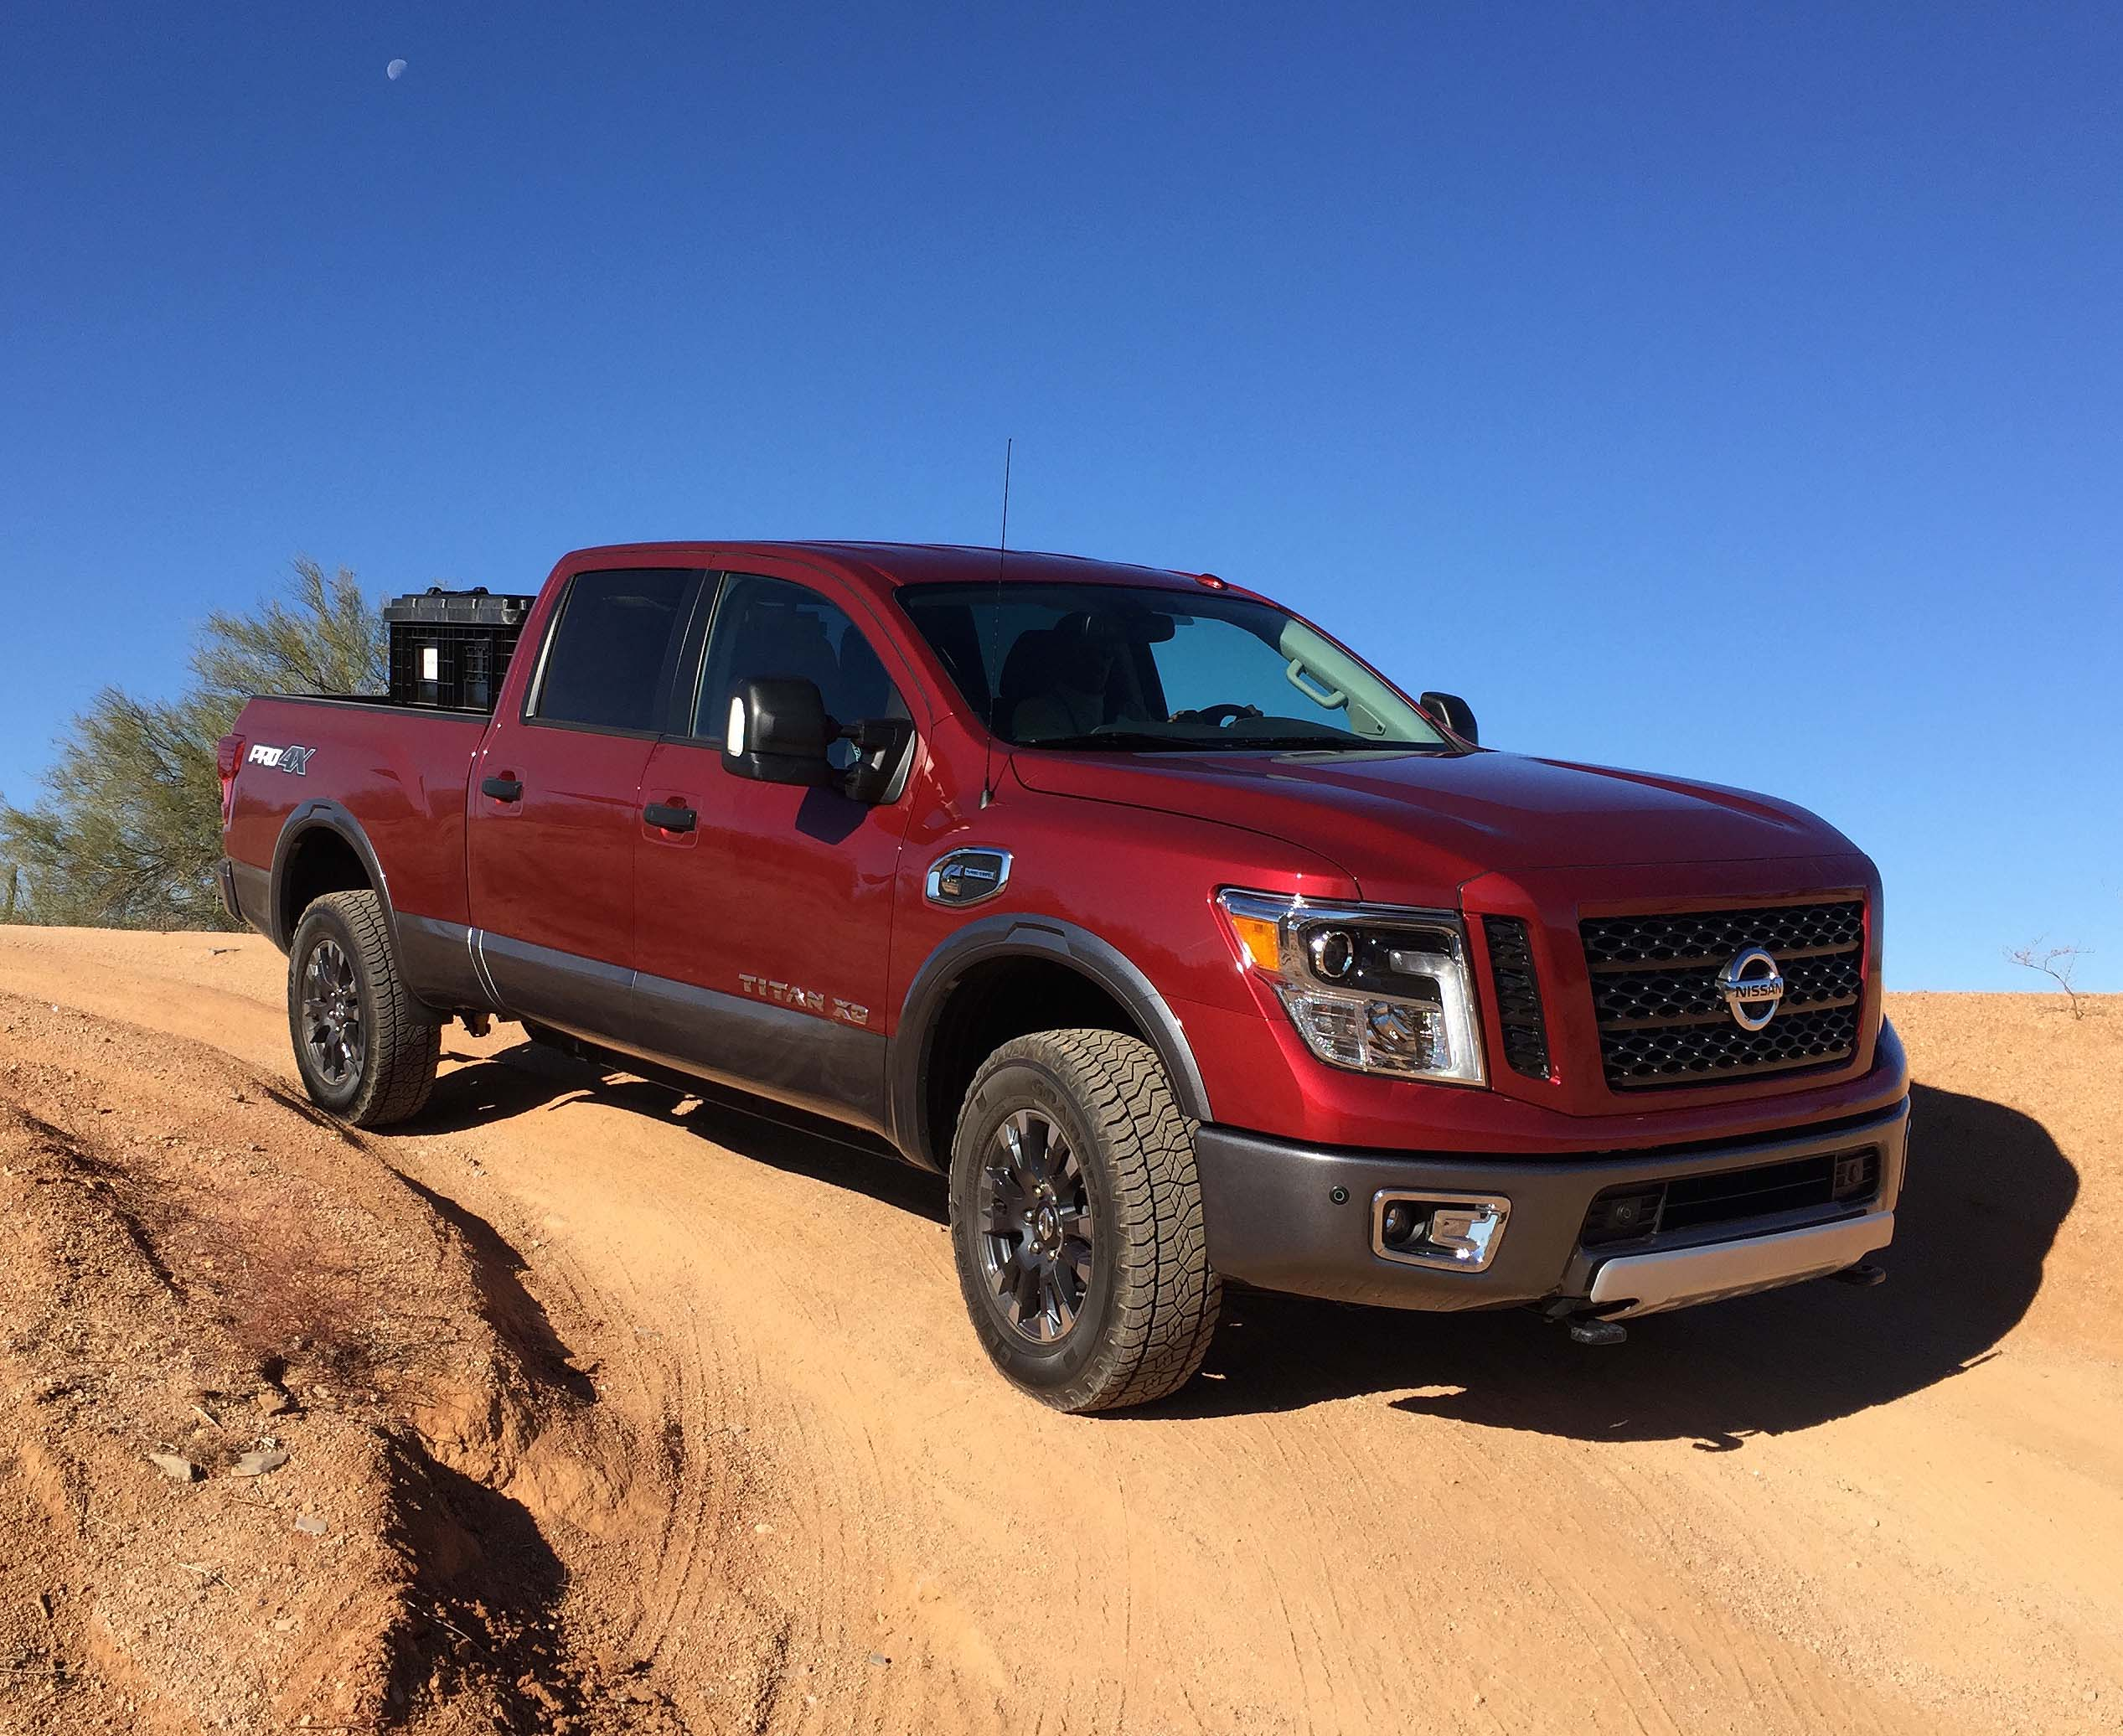 2016 Nissan Titan Xd Crew Cab Full Size Fighter Defined